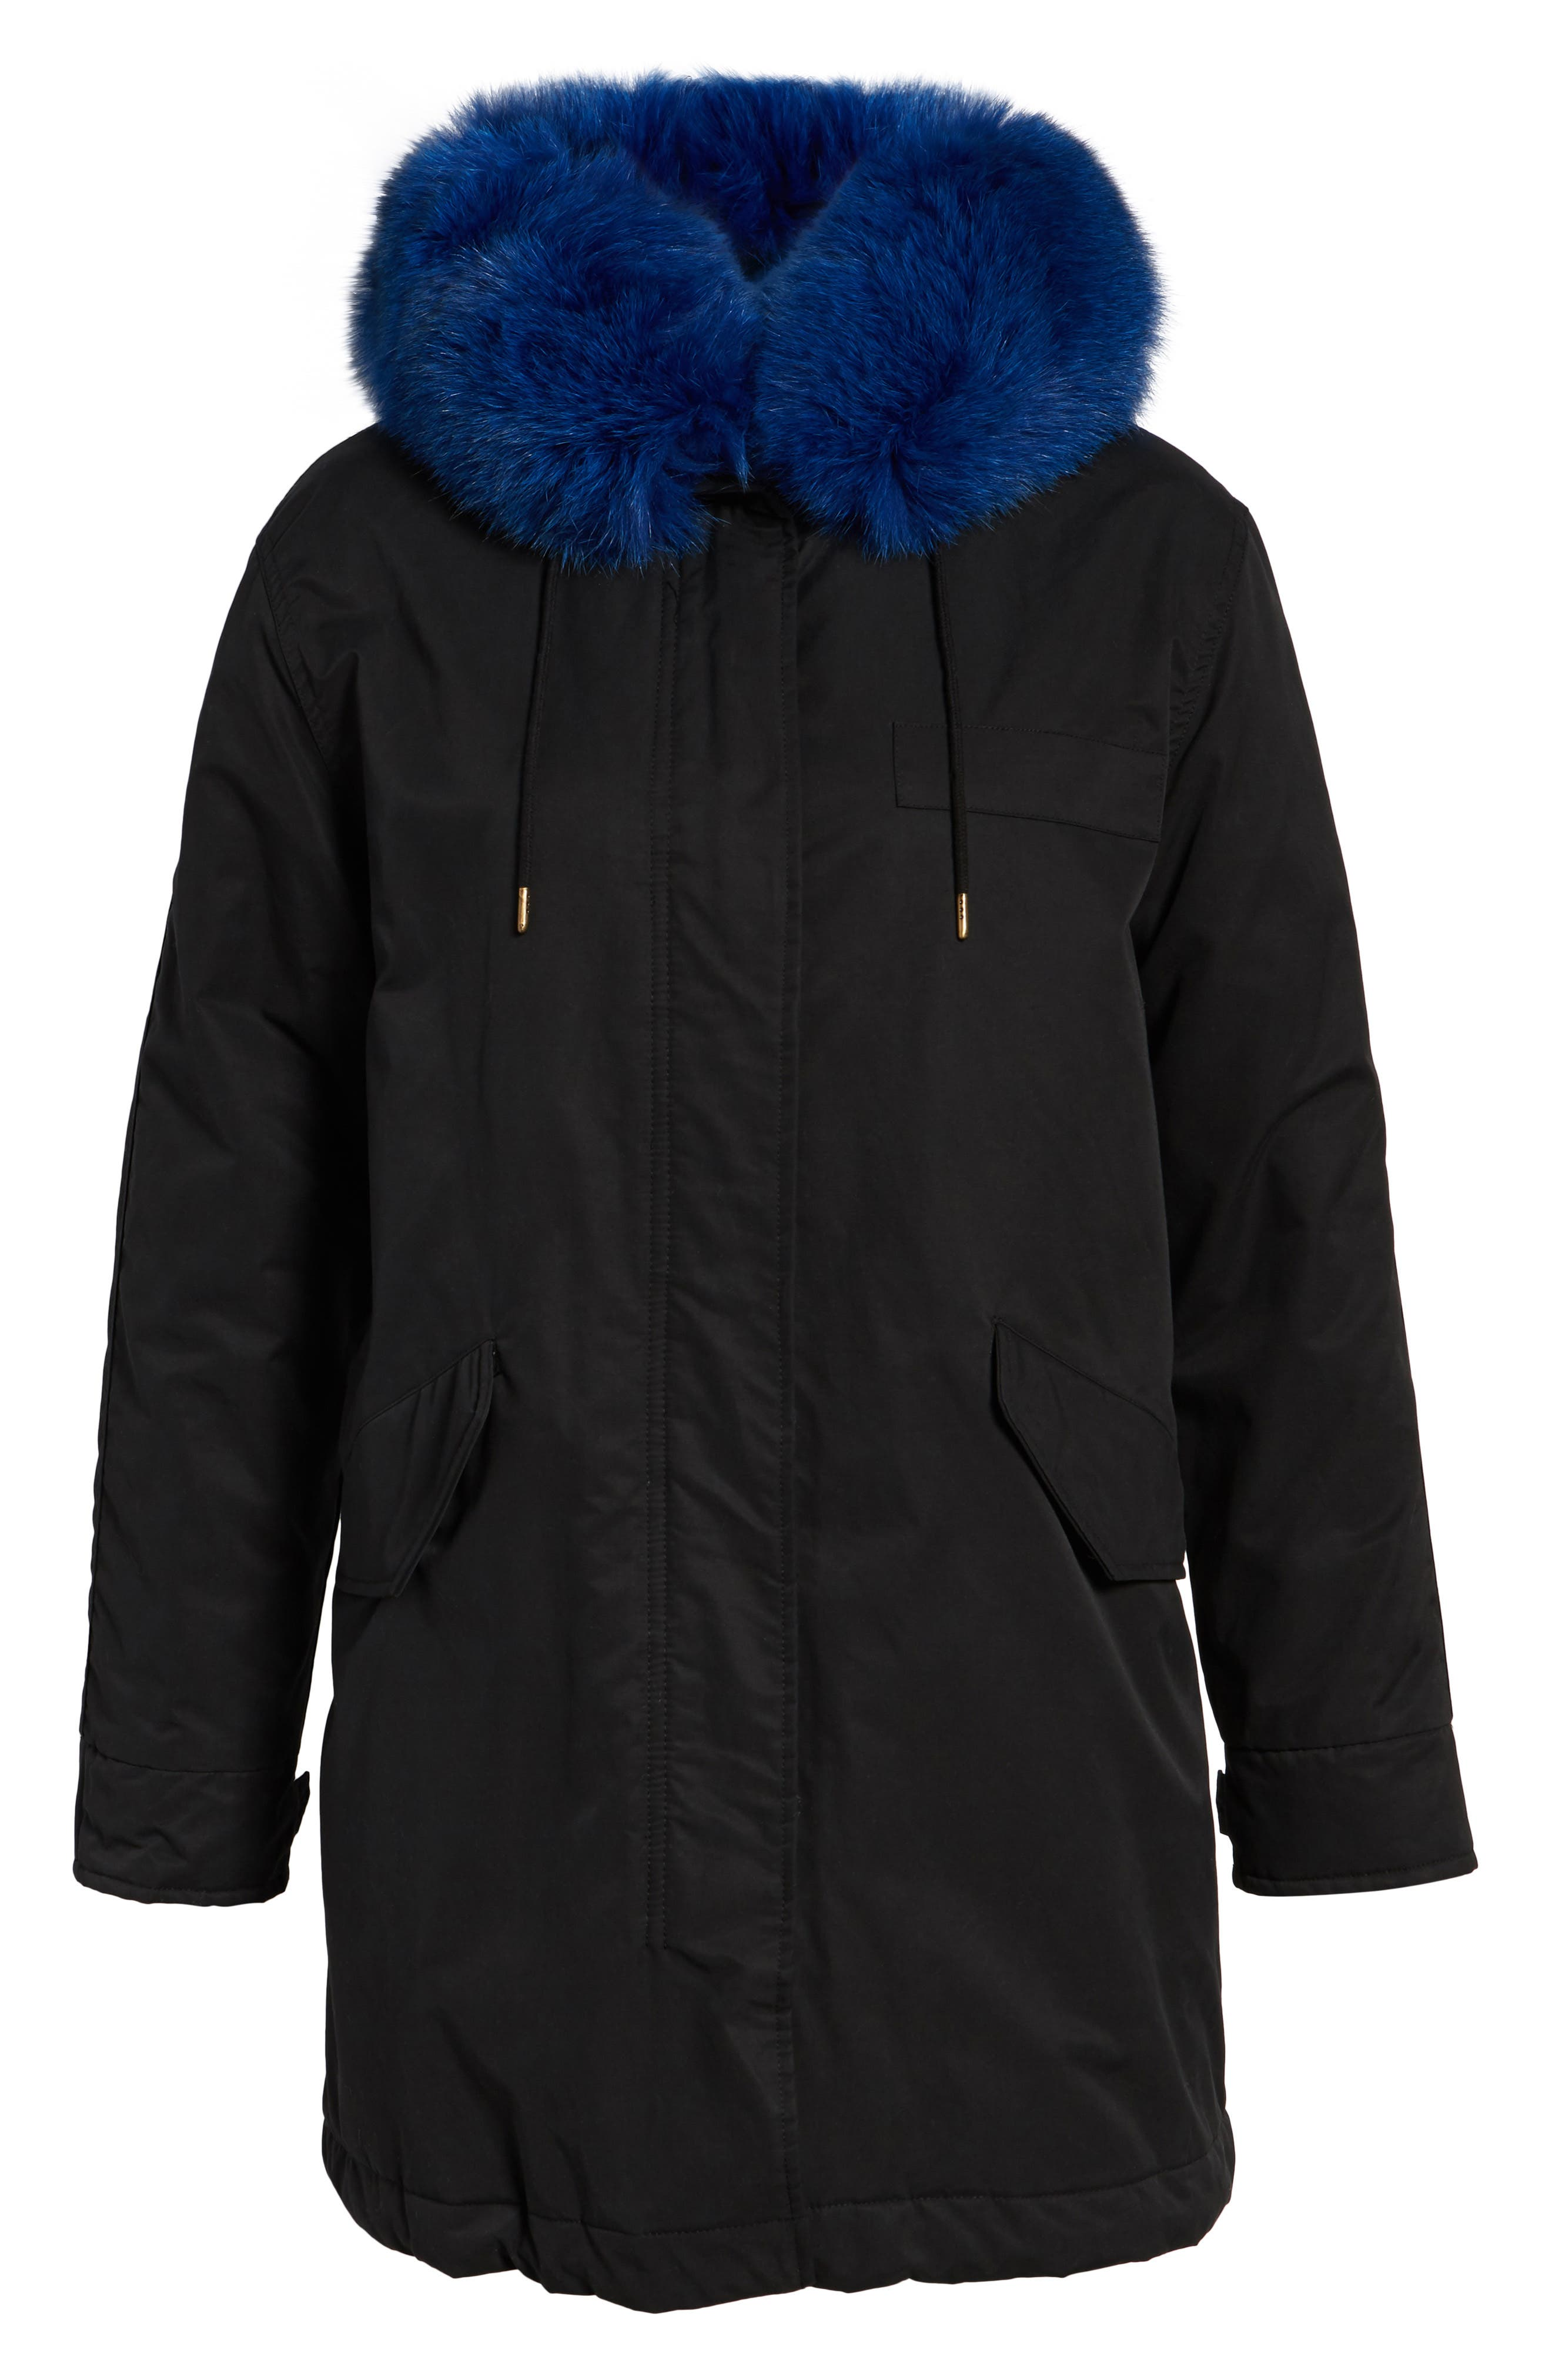 Hooded Cotton Parka with Genuine Fox Fur Trim,                             Alternate thumbnail 5, color,                             001